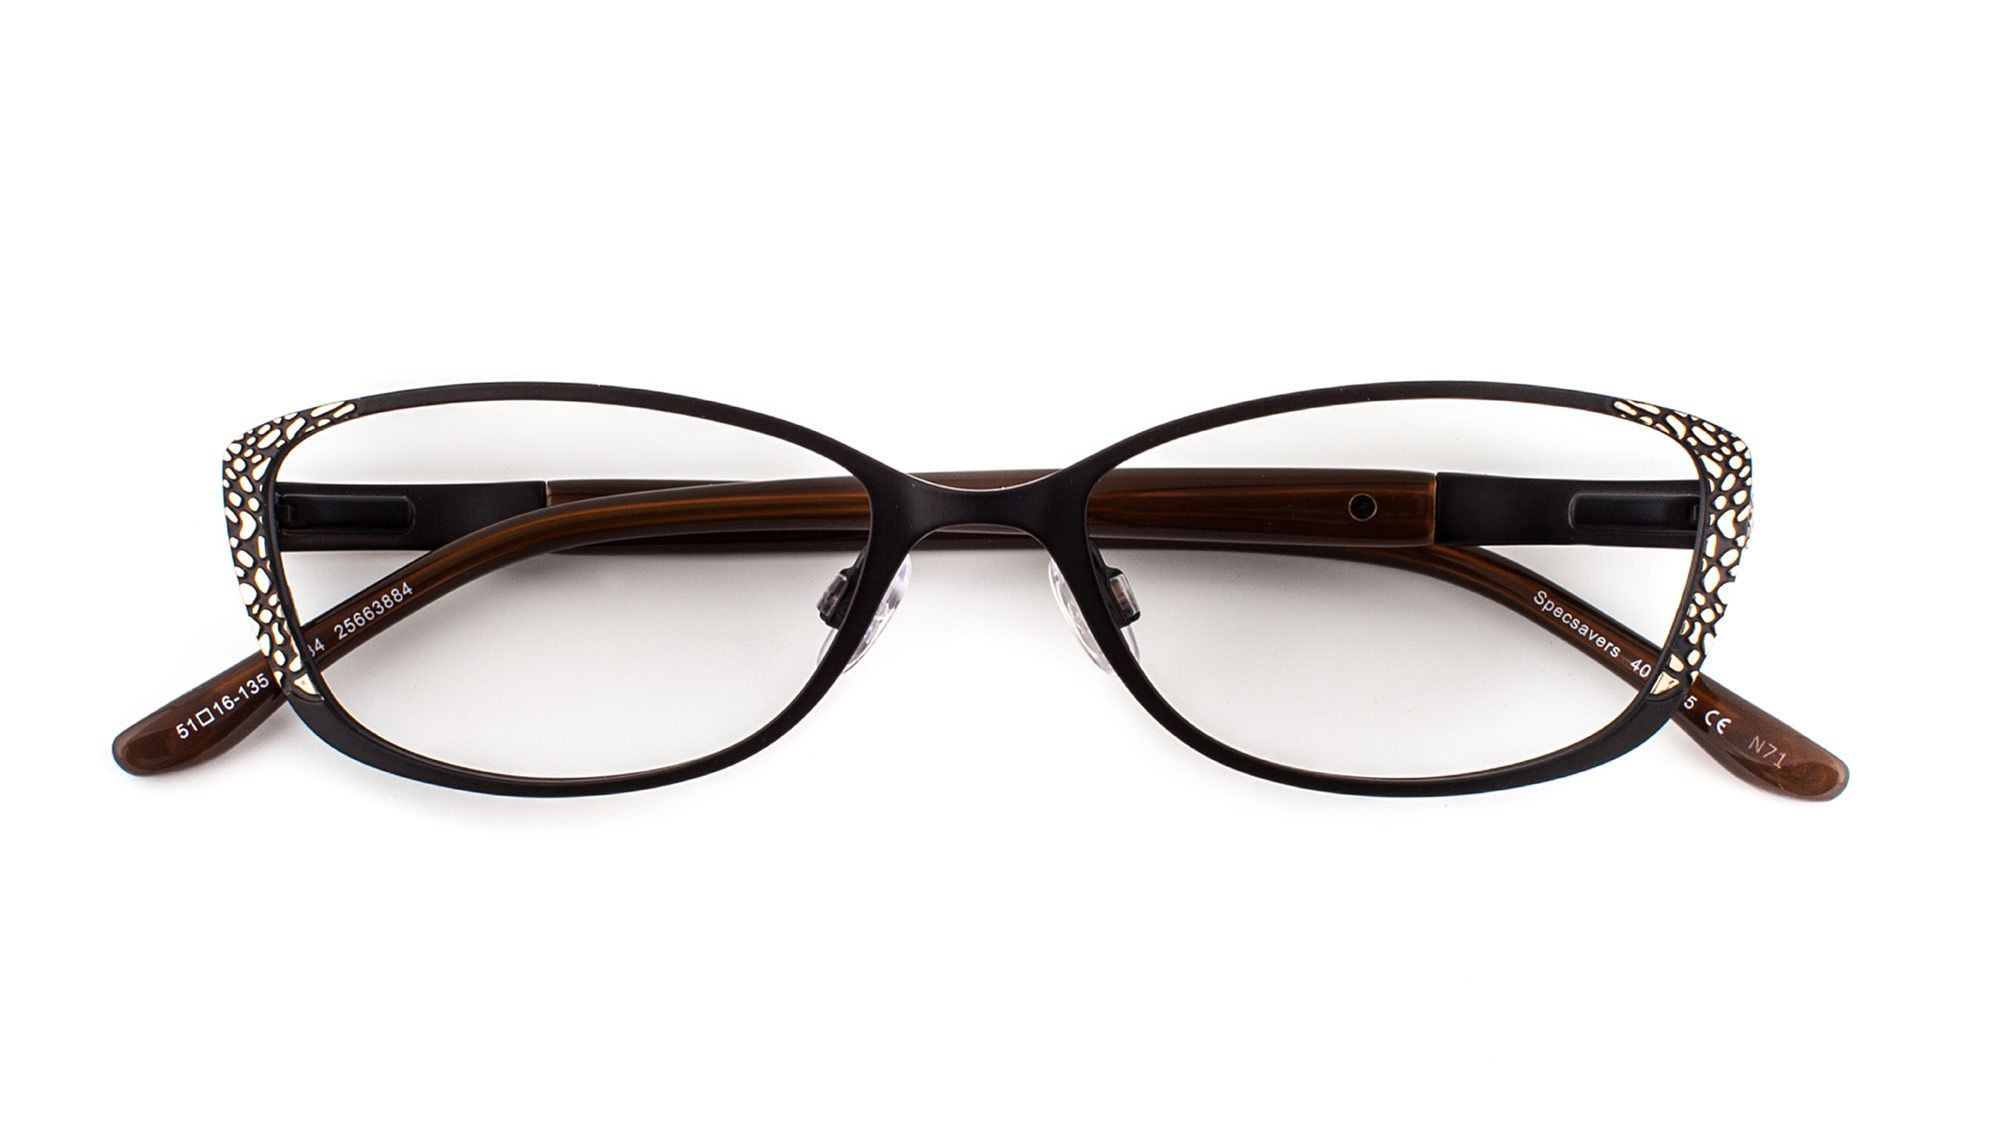 Specsavers Optometrists - Designer Glasses, Sunglasses, Contact ...